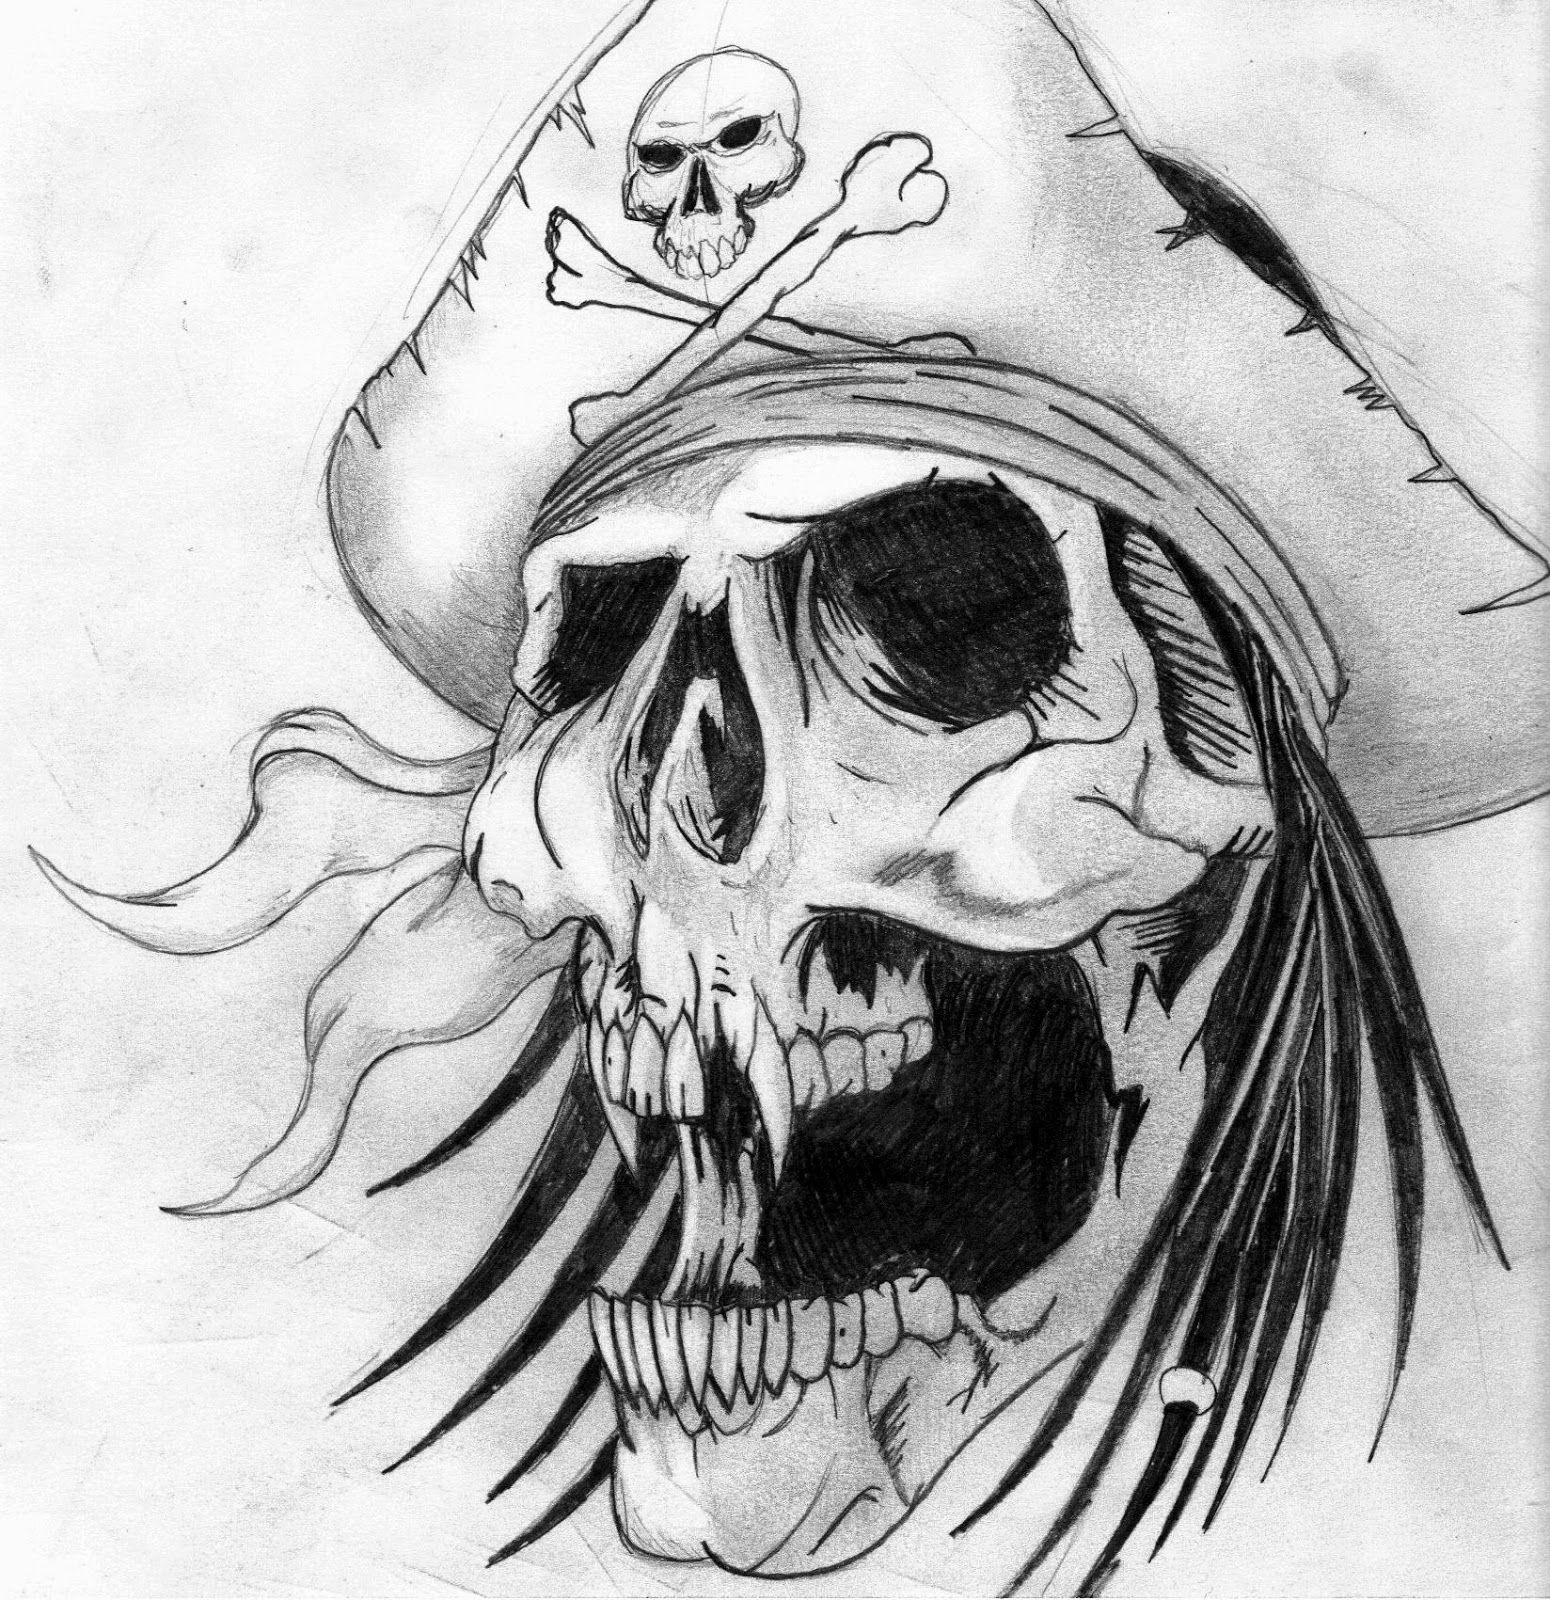 Free skull tattoo designs to print - Best Skull Tattoo Designs Skull Tattoos